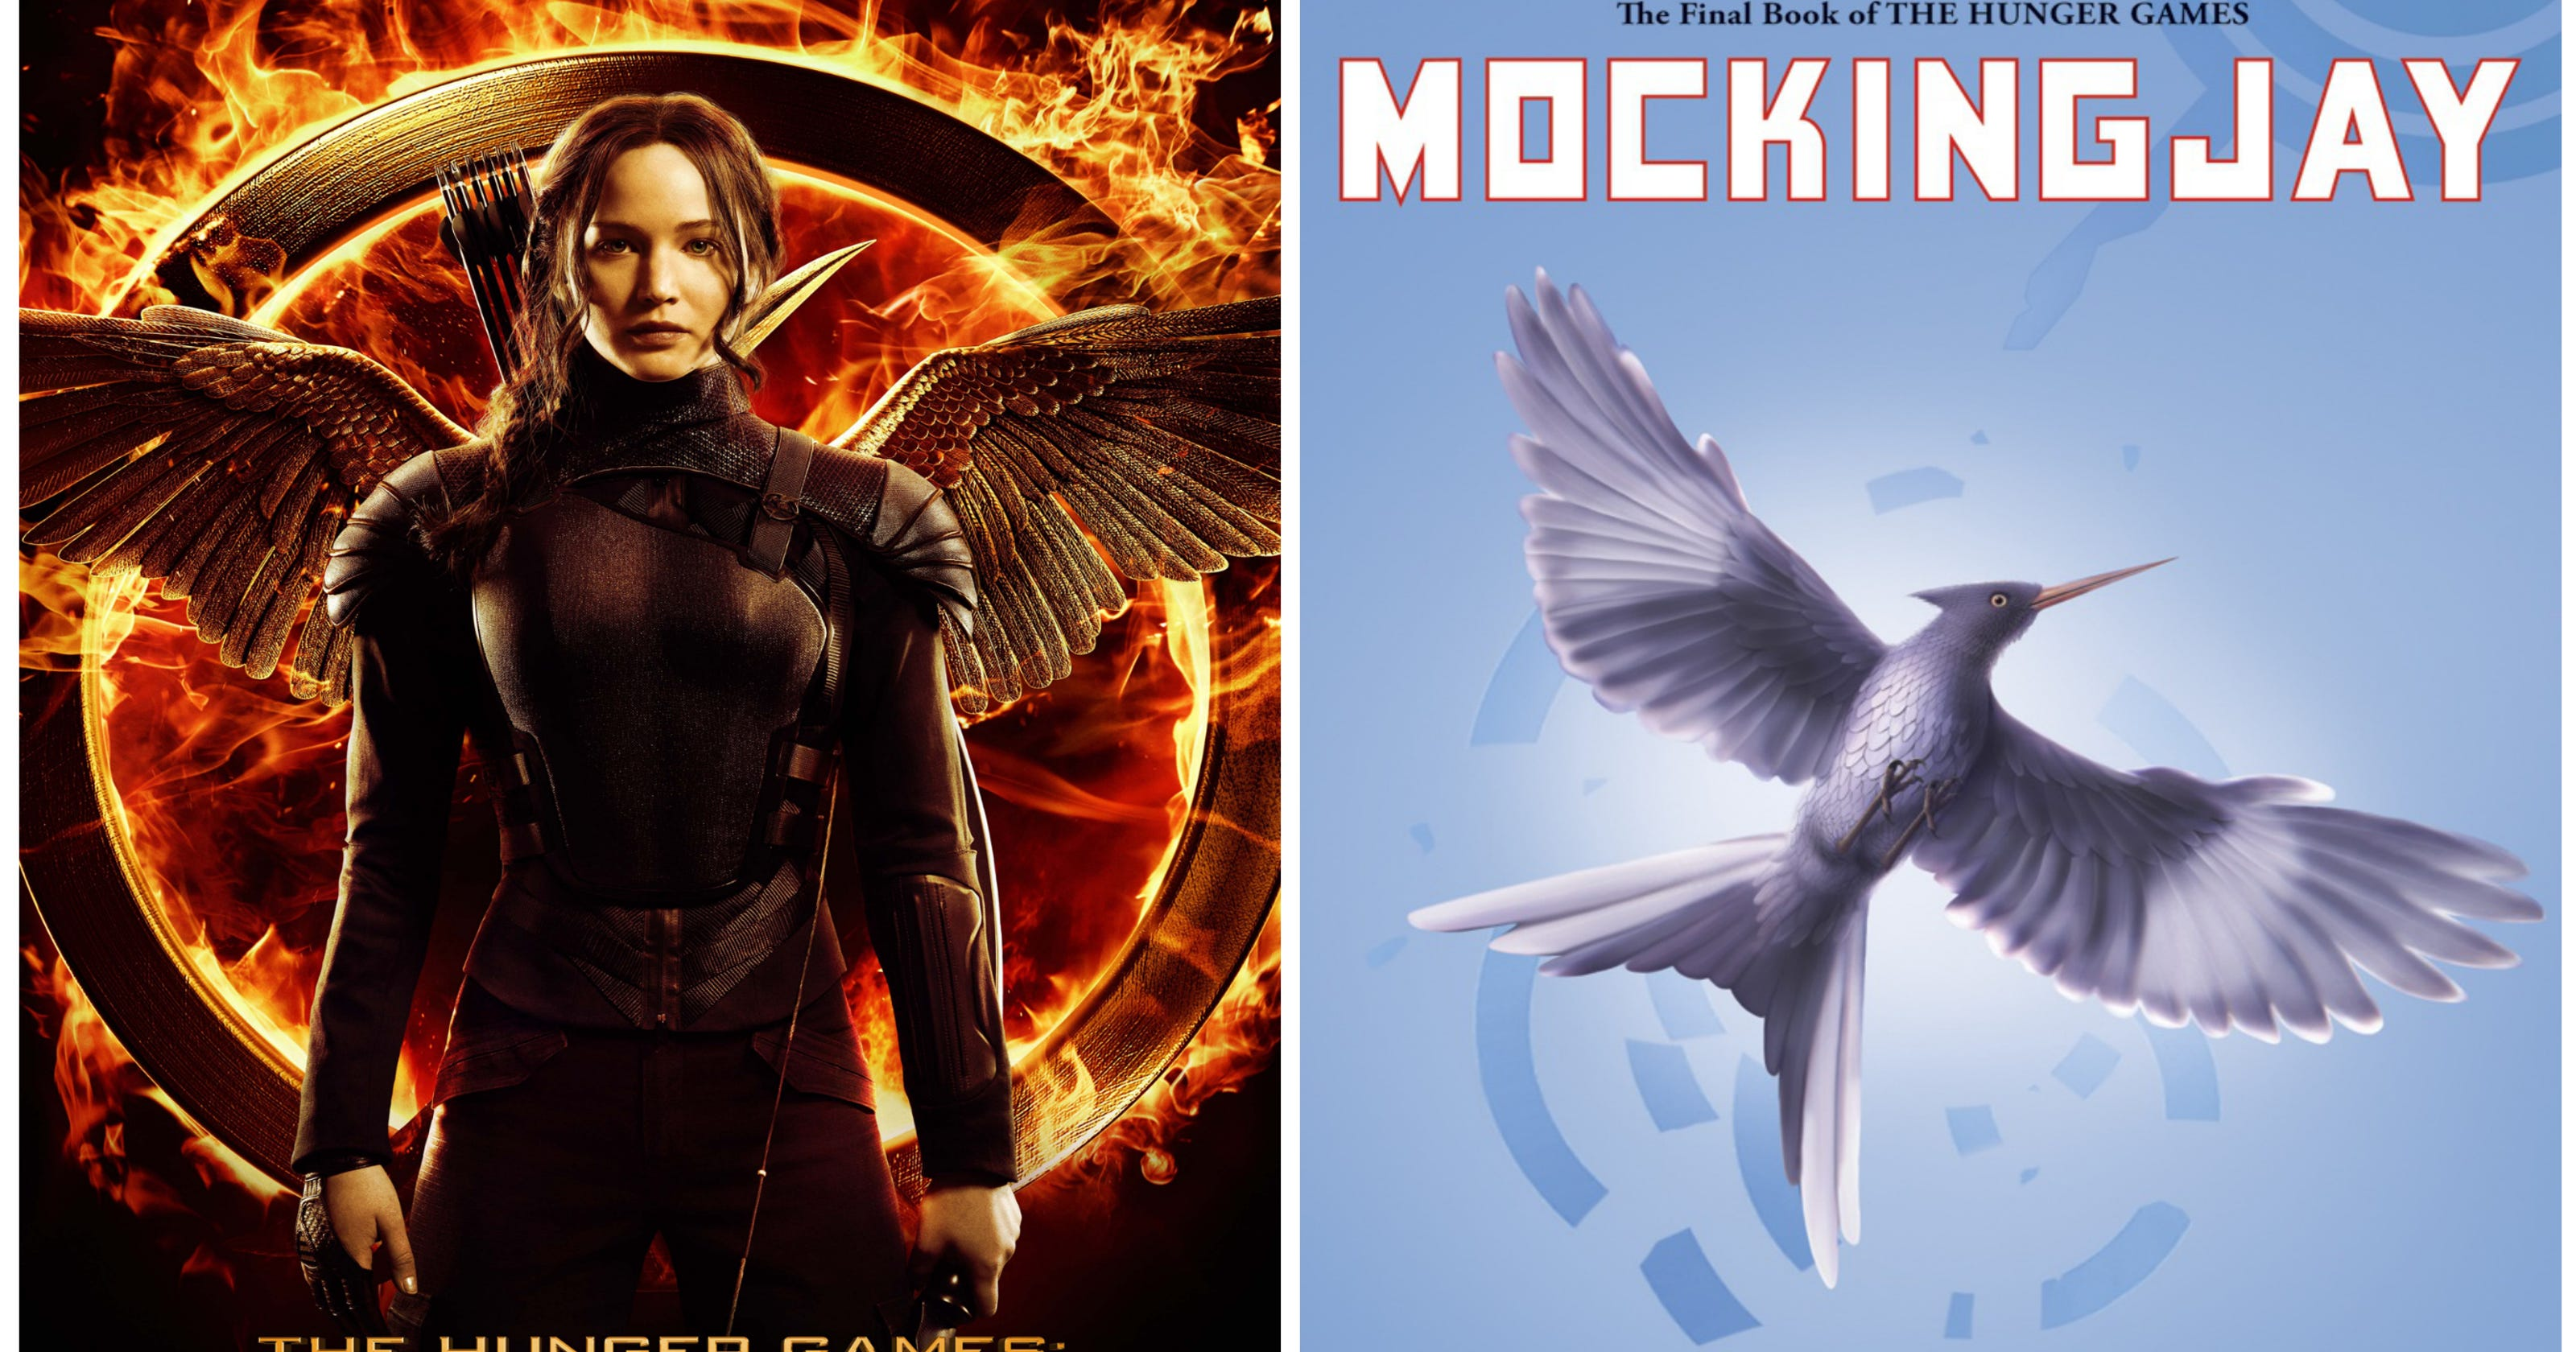 third book in hunger games series